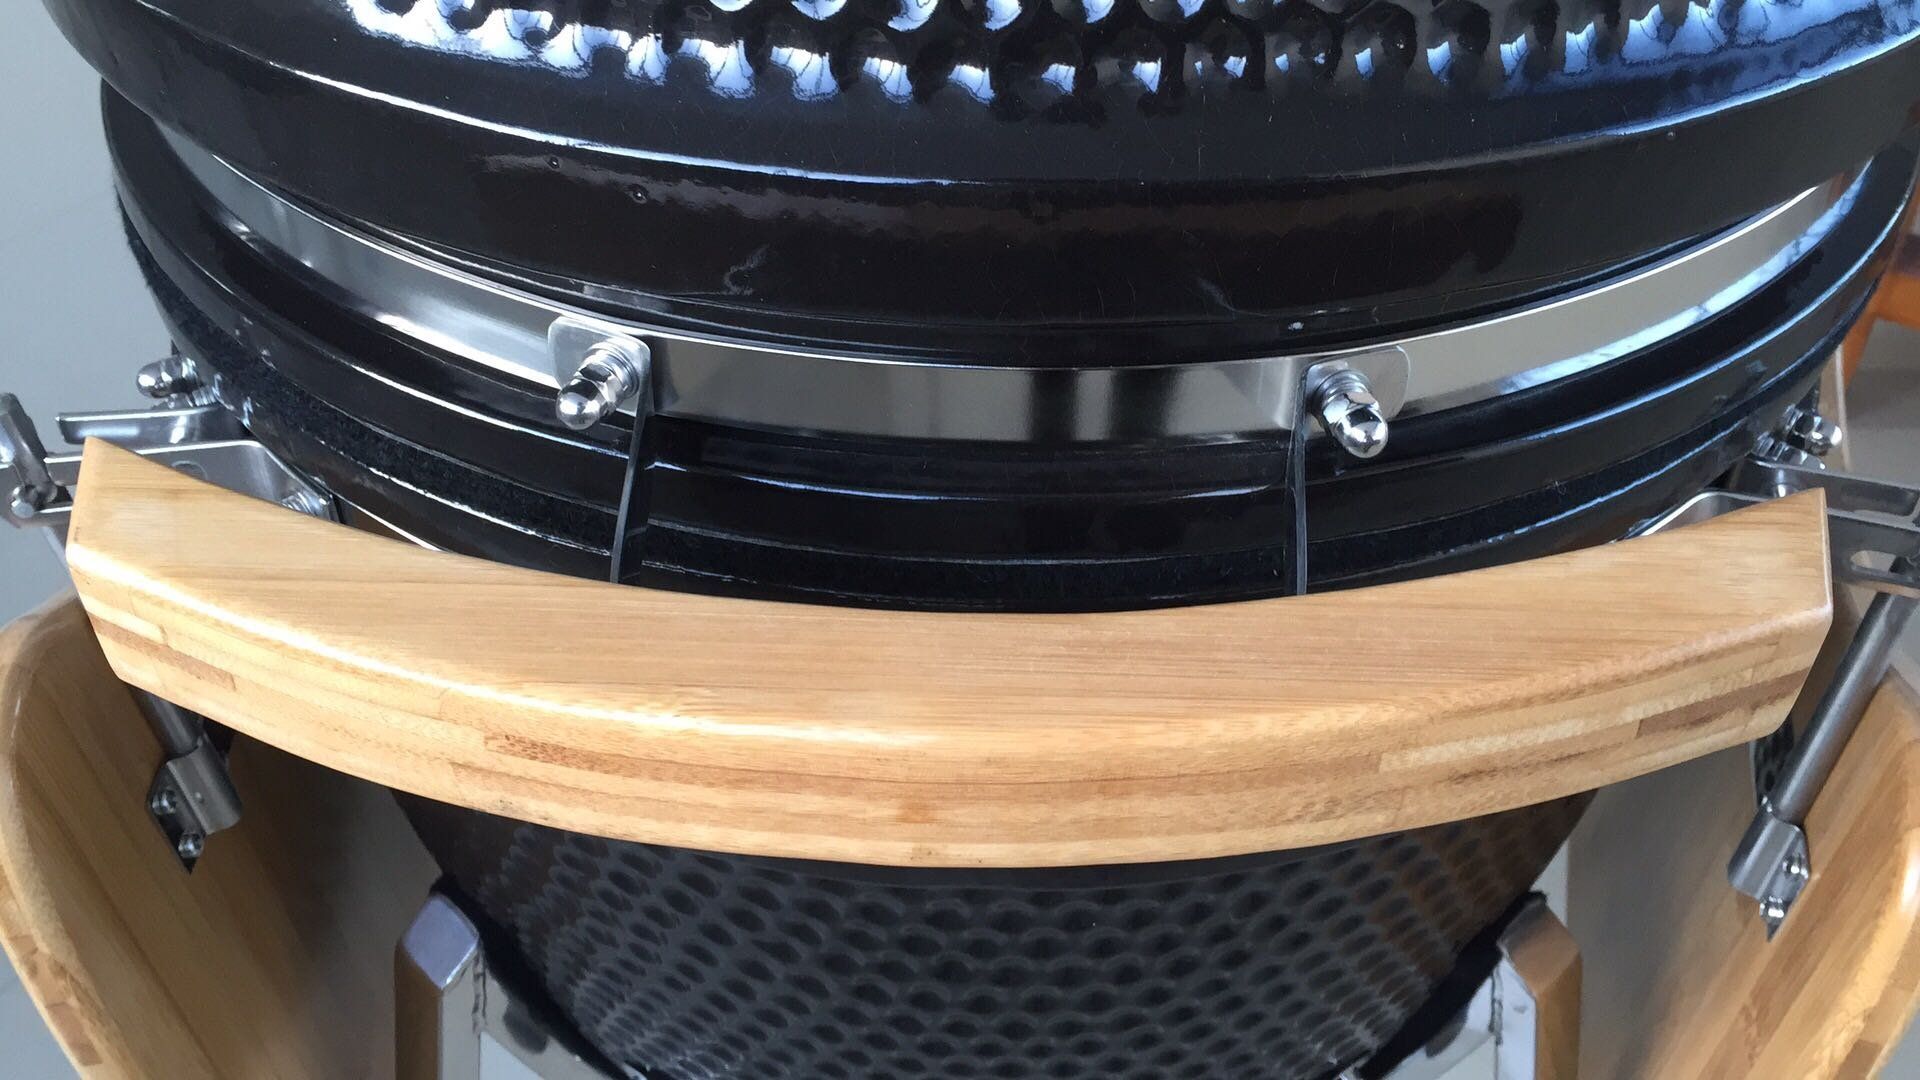 21'' Ceramic Kamado style Grill/Smoker with Stand and Side Trays